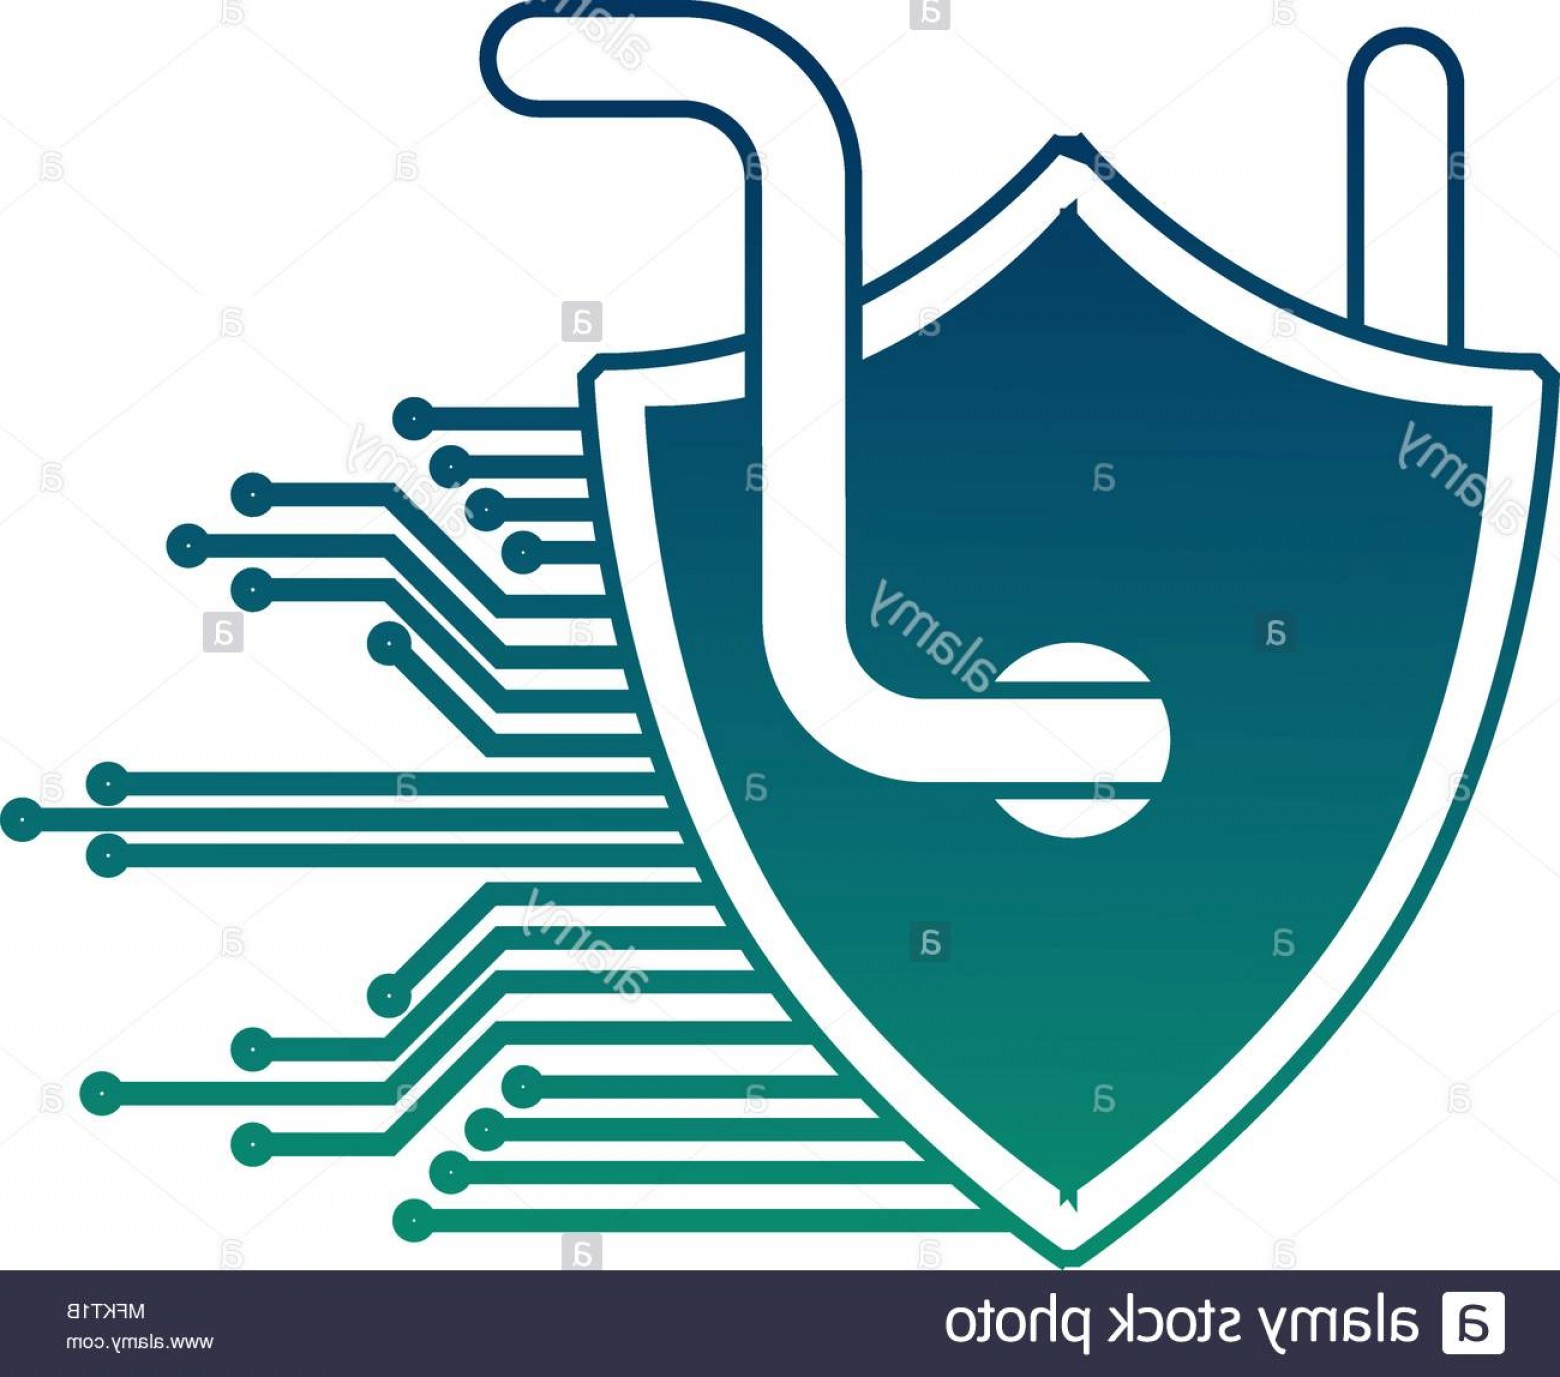 Cyber Defense Vector: Cyber Security Shield Protection Worm Virus Circuit Technology Hacking Image